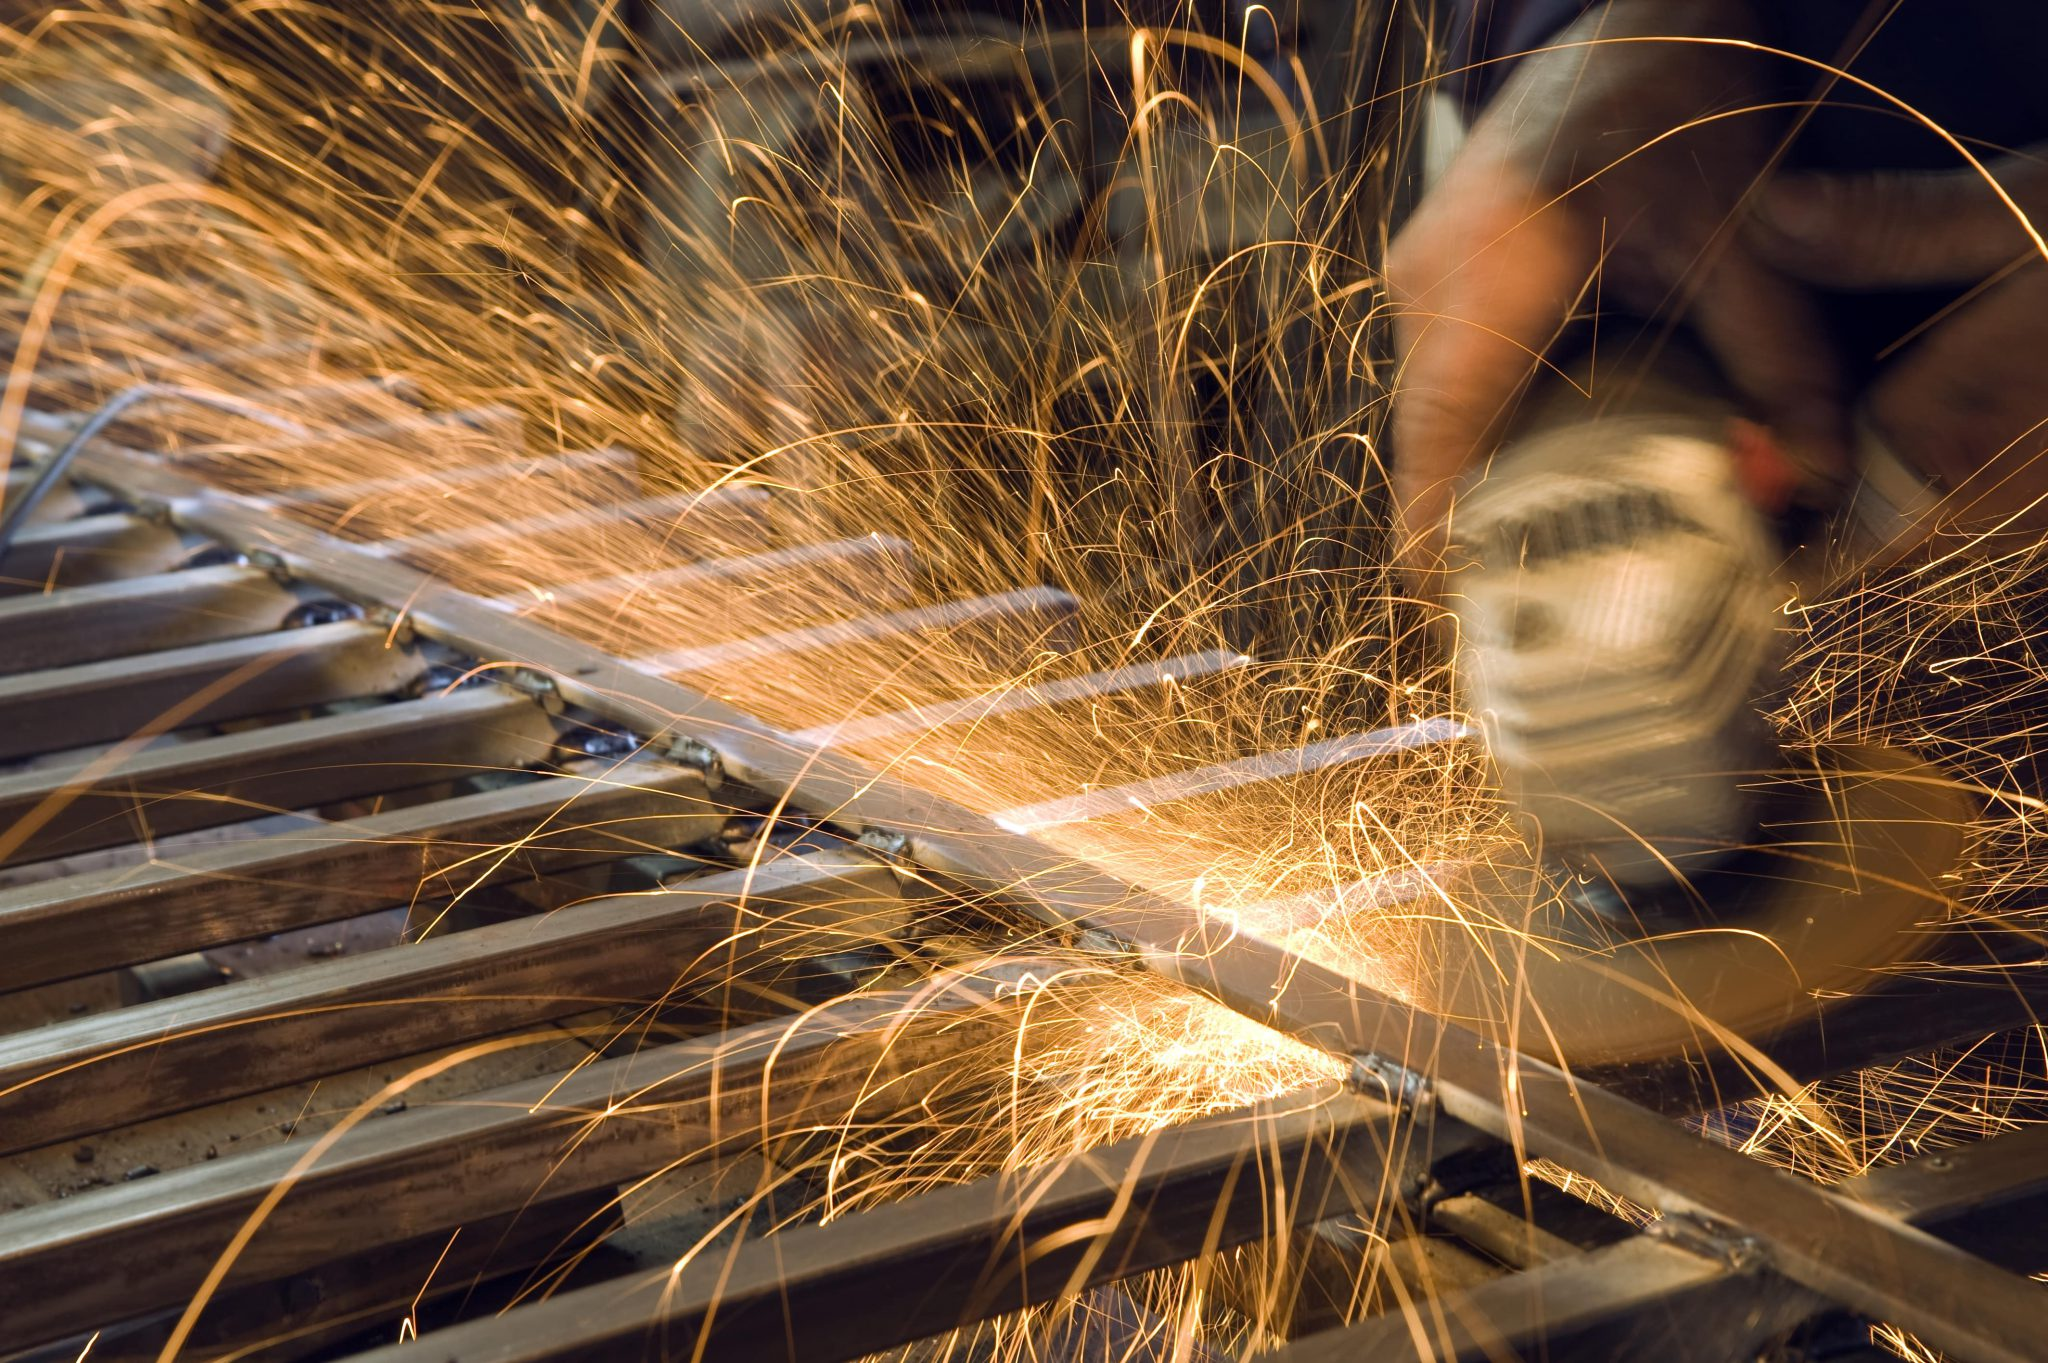 cutting metal with a grinding machine